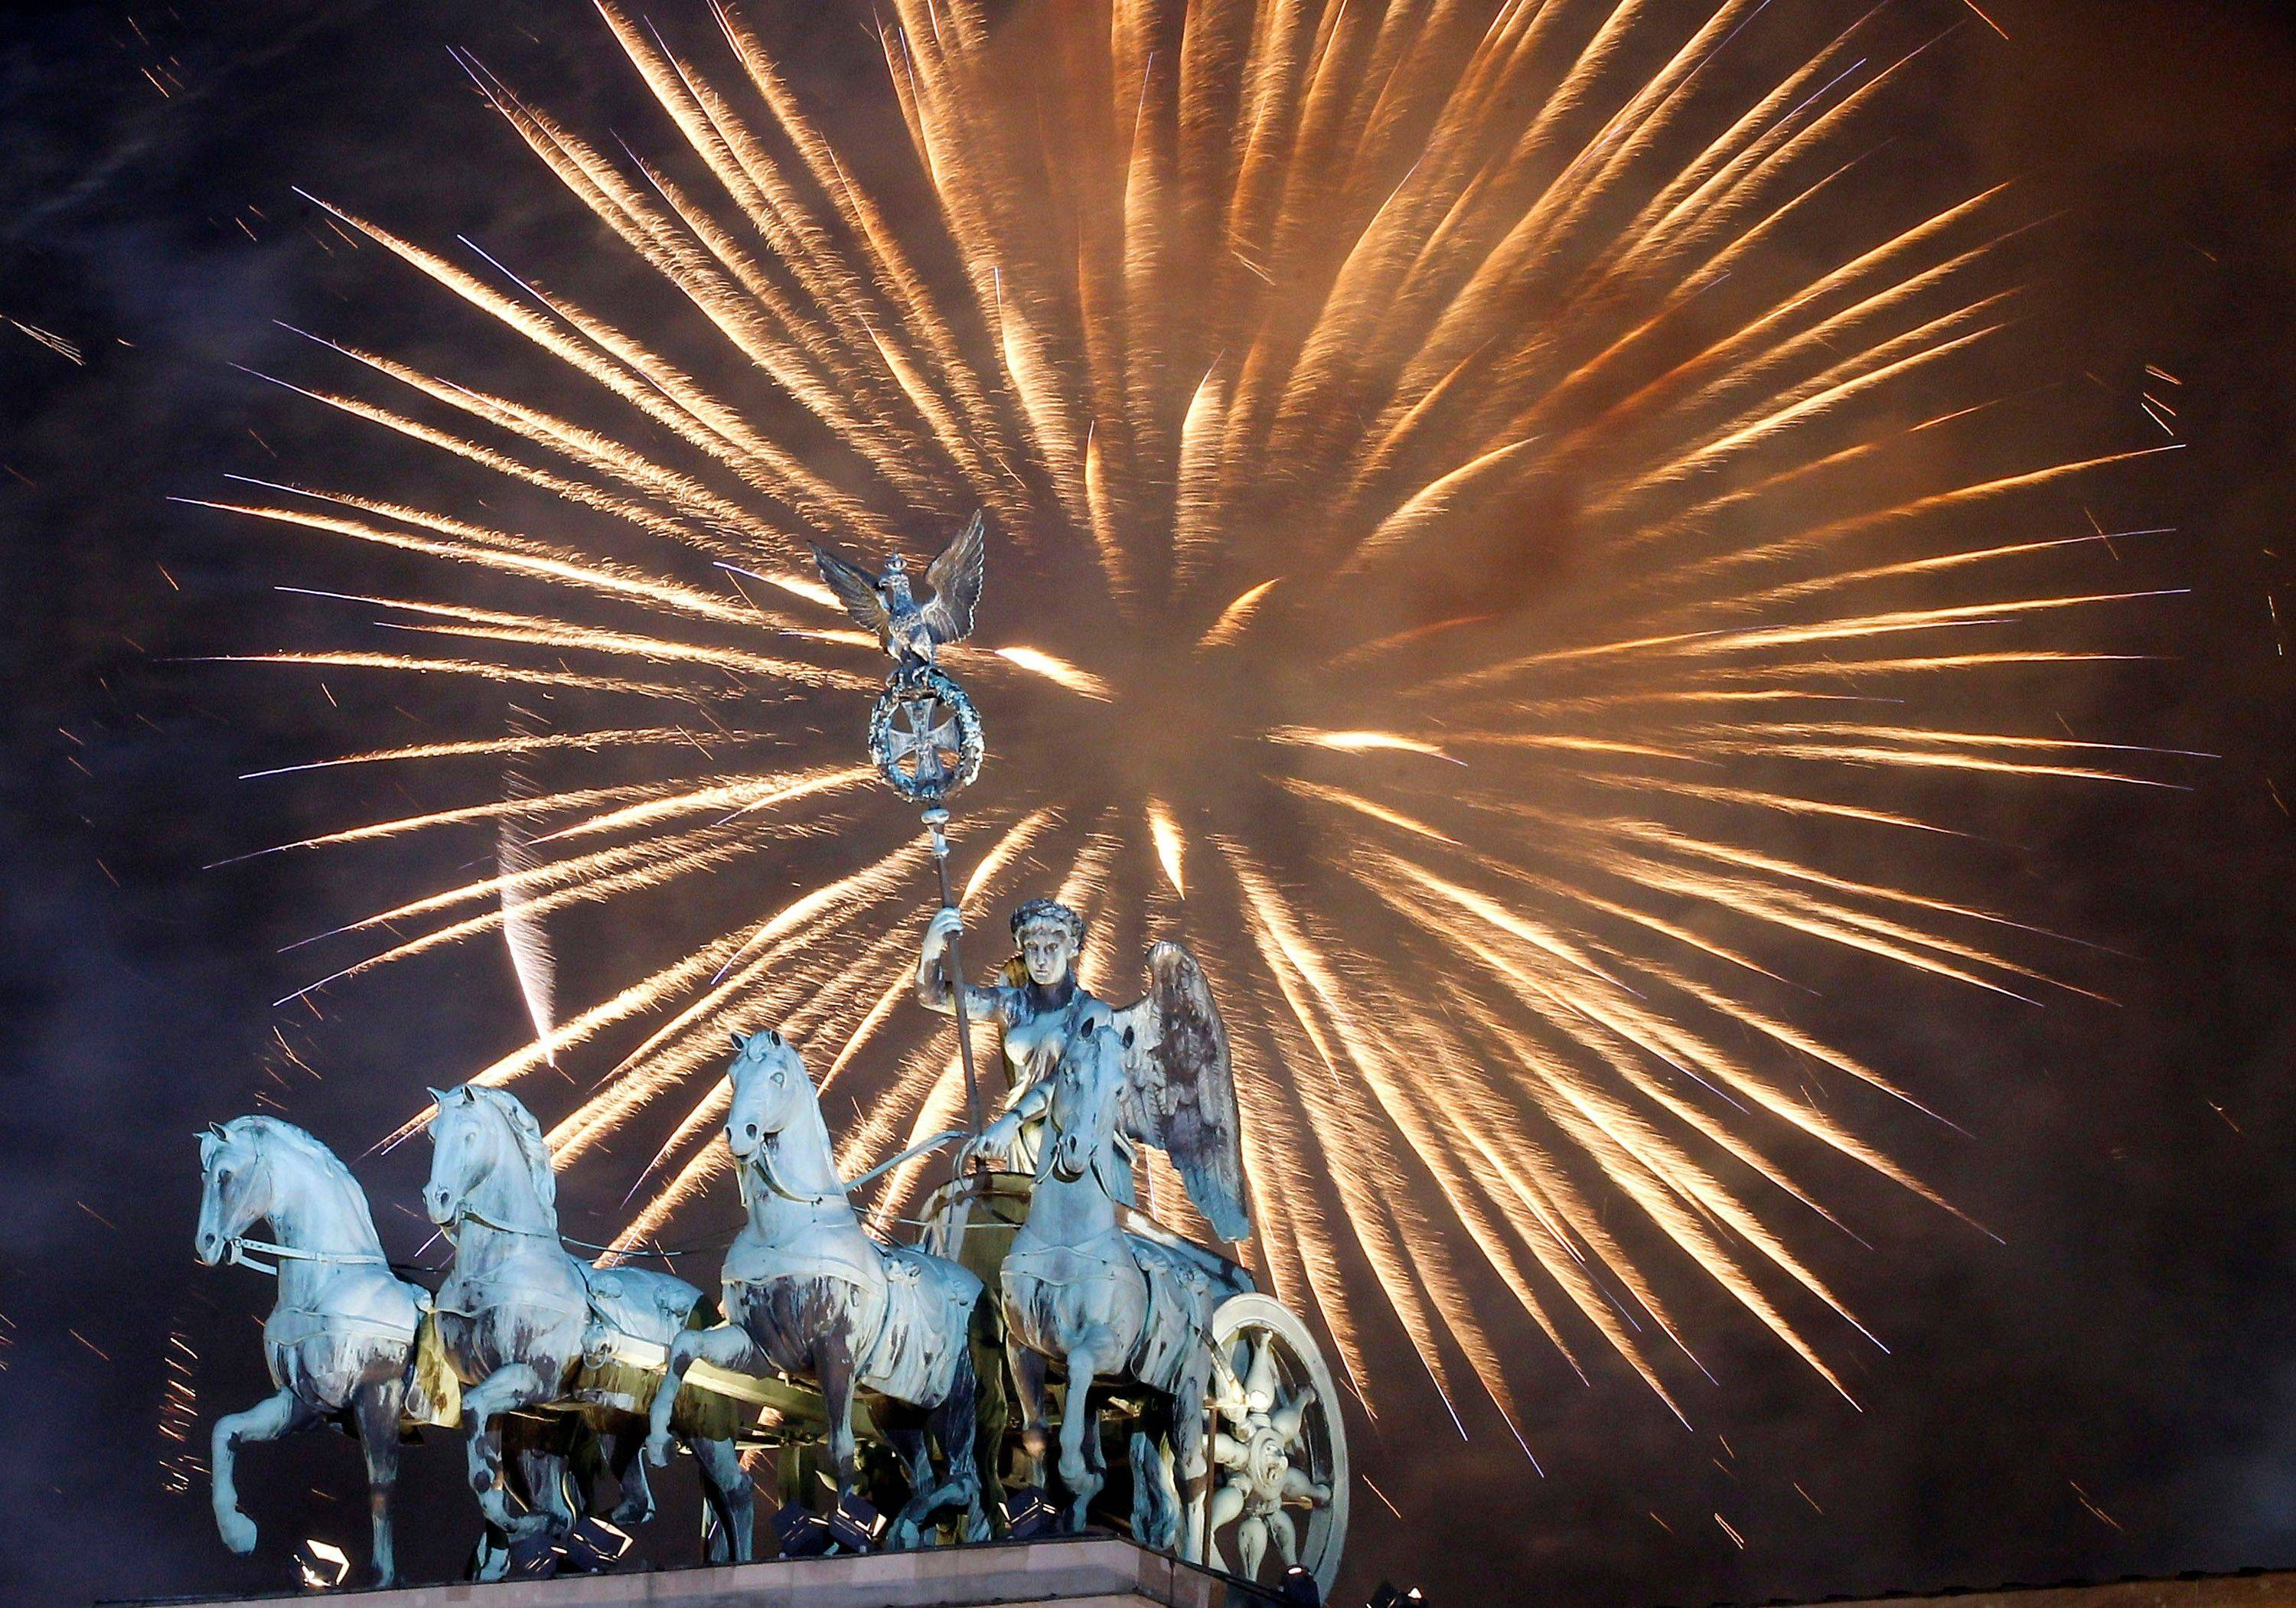 Fireworks light the sky above the Quadriga at the Brandenburg Gate in Berlin shortly after midnight, greeting the New Year, Sunday, Jan. 1, 2012. Hundred thousands of people celebrated the beginning of the New Year 2012 in Germany's capital.